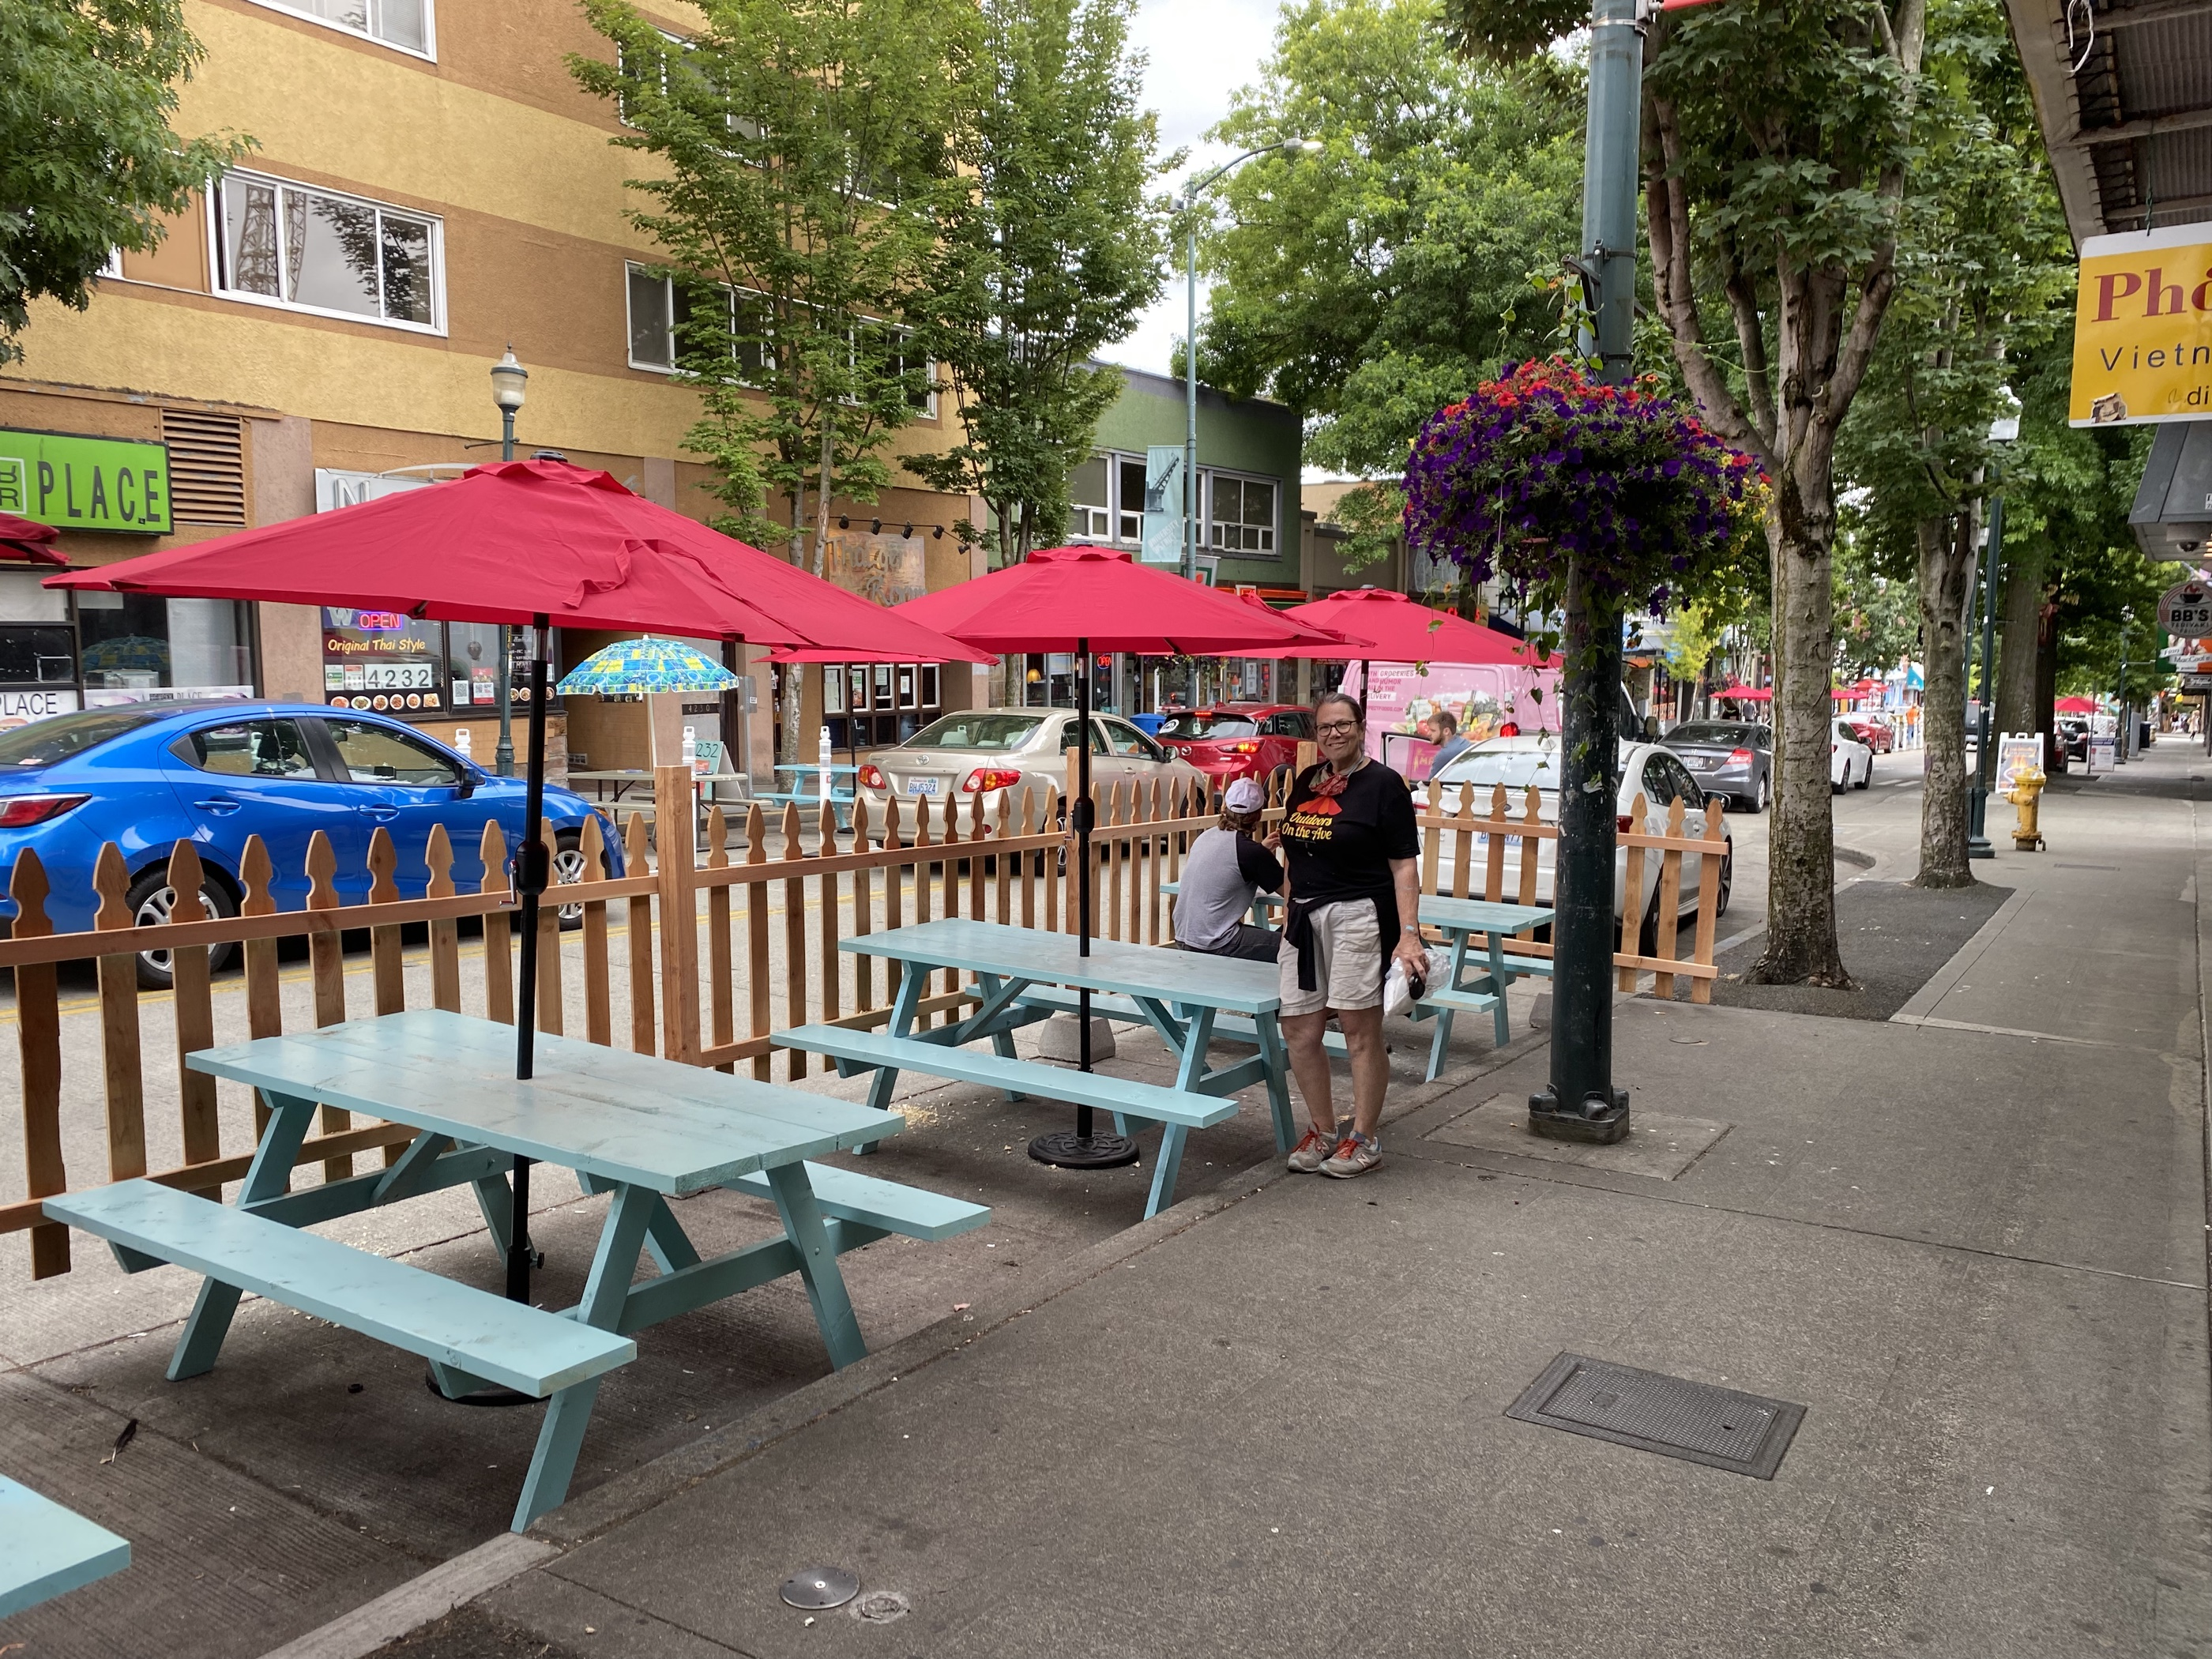 Light blue picnic tables surrounded by fencing and pink umbrellas on a city street